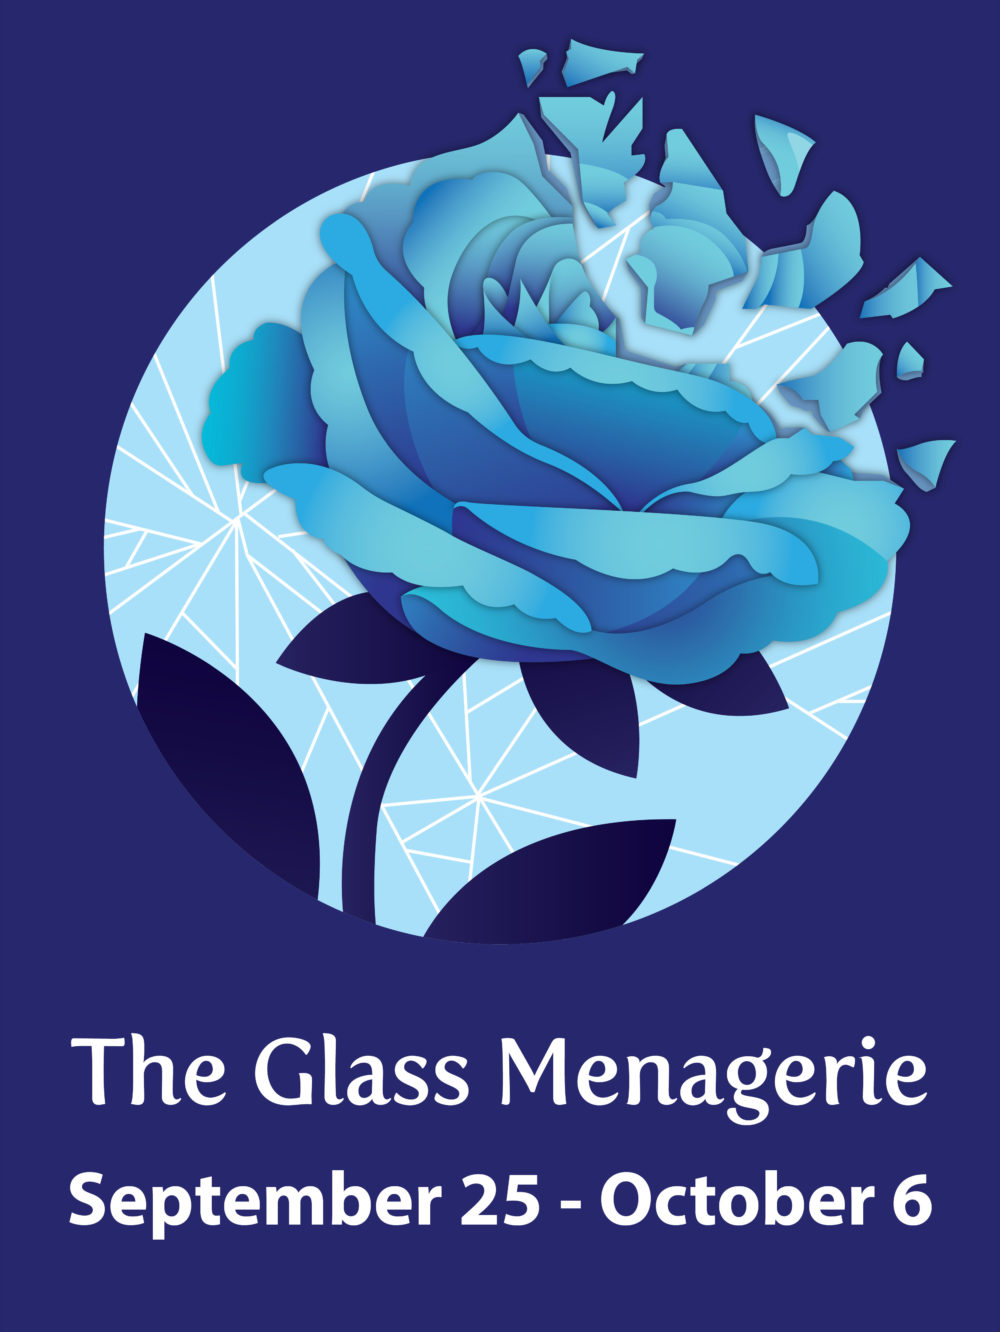 essays on tennessee williams the glass menagerie The glass menagerie tennessee williams the glass menagerie literature essays are academic essays for citation these papers were written primarily by students and provide critical analysis of the glass menagerie.